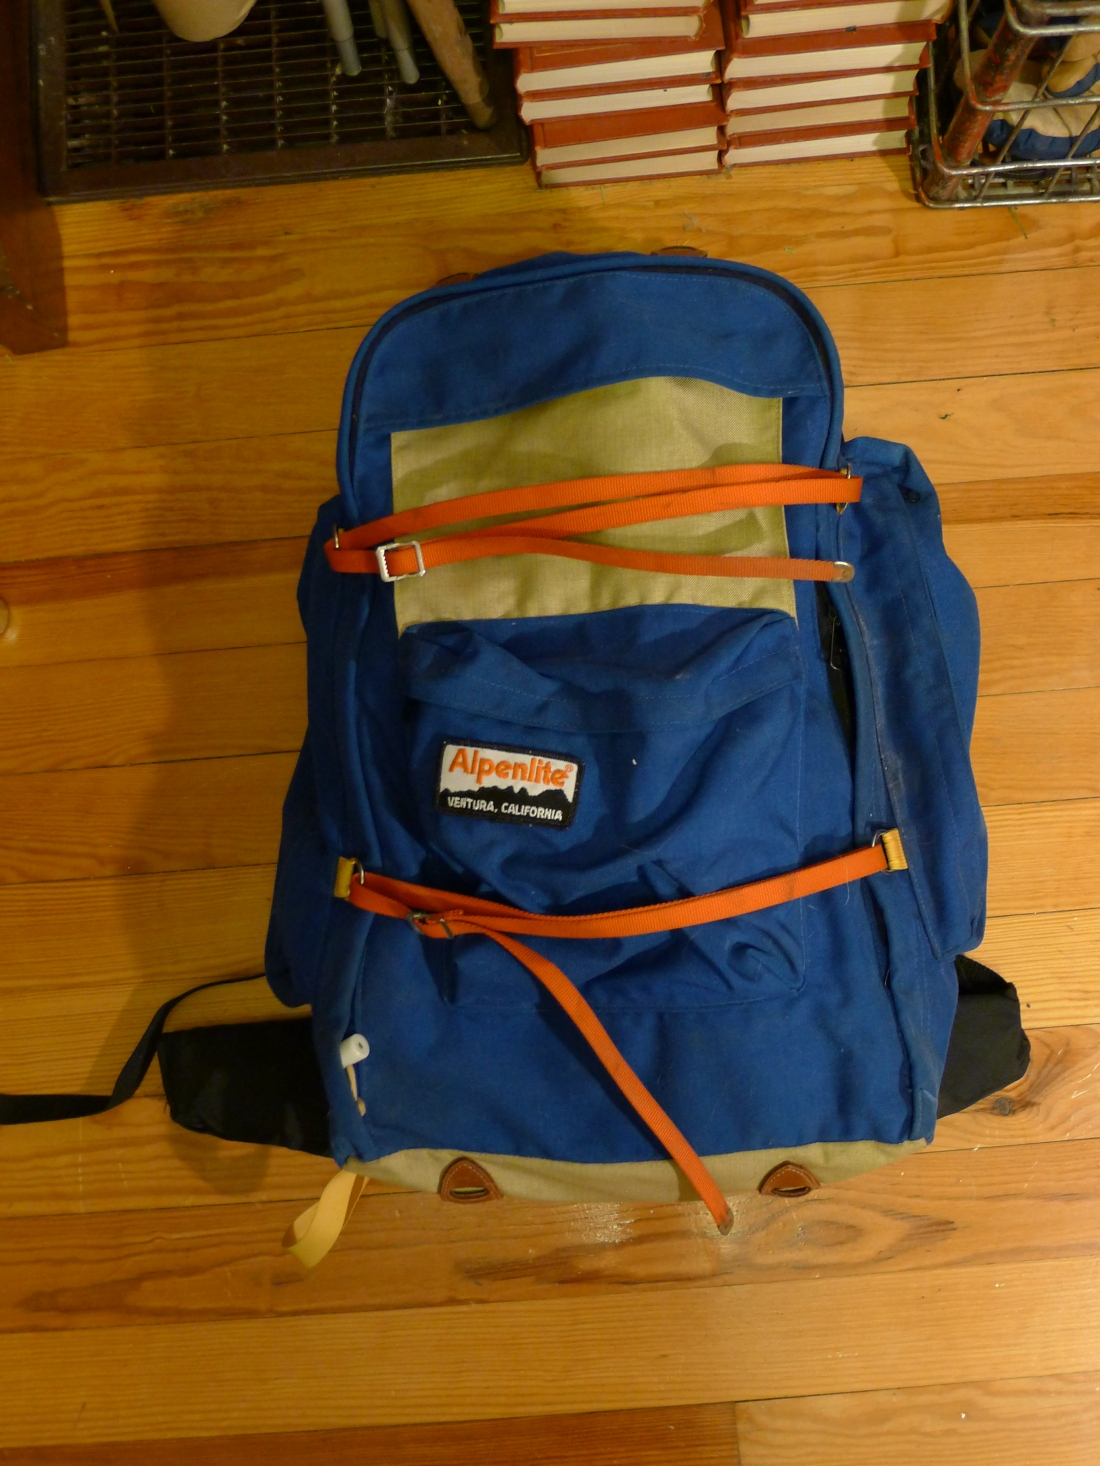 Alpenlite Internal Frame backpack - Ventura, California